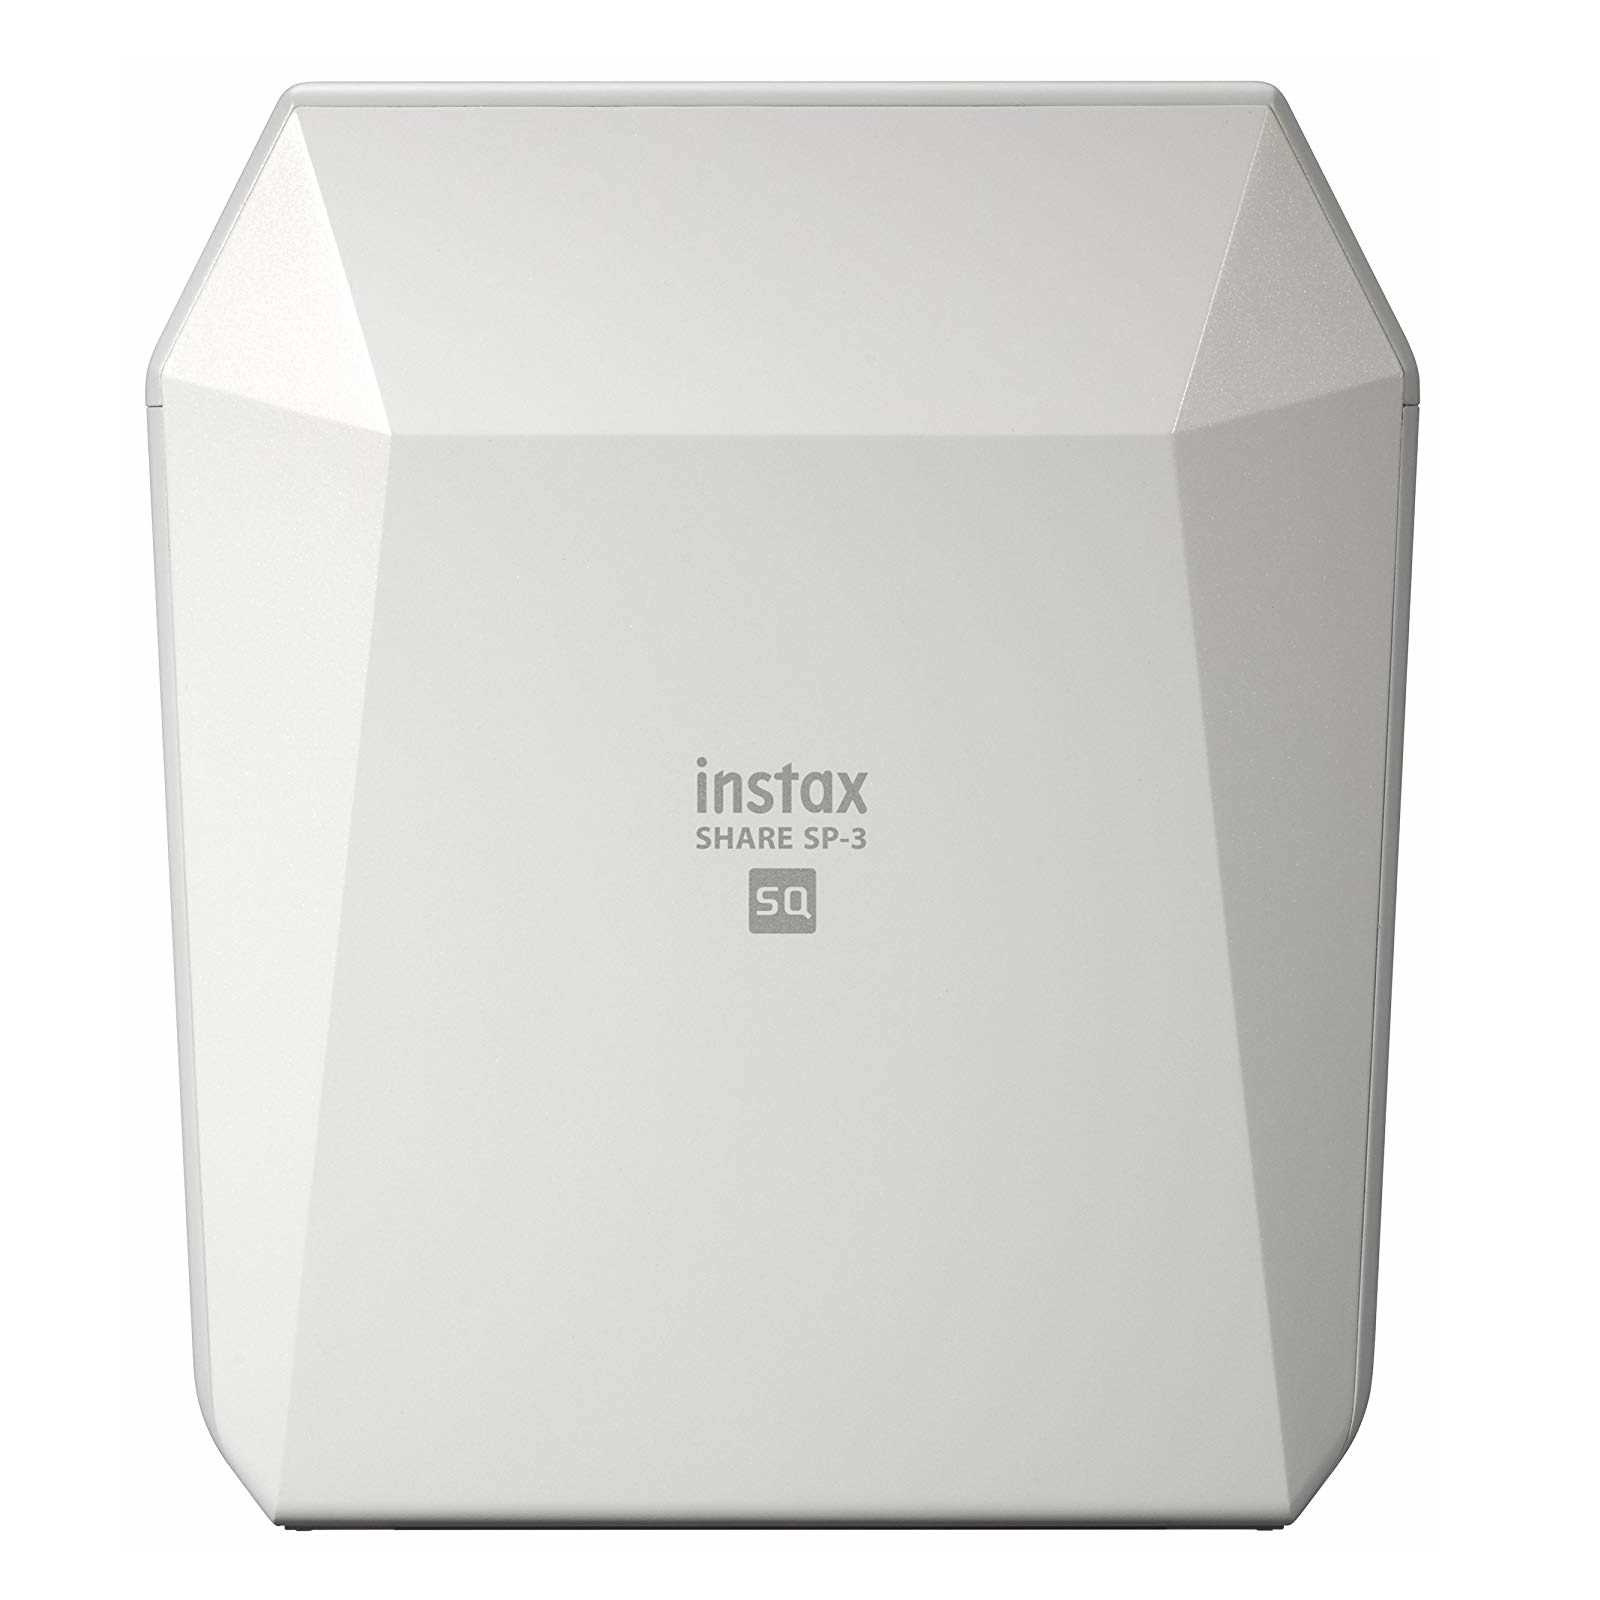 Fujifilm Instax Share SP-3 SQ Photo Printer